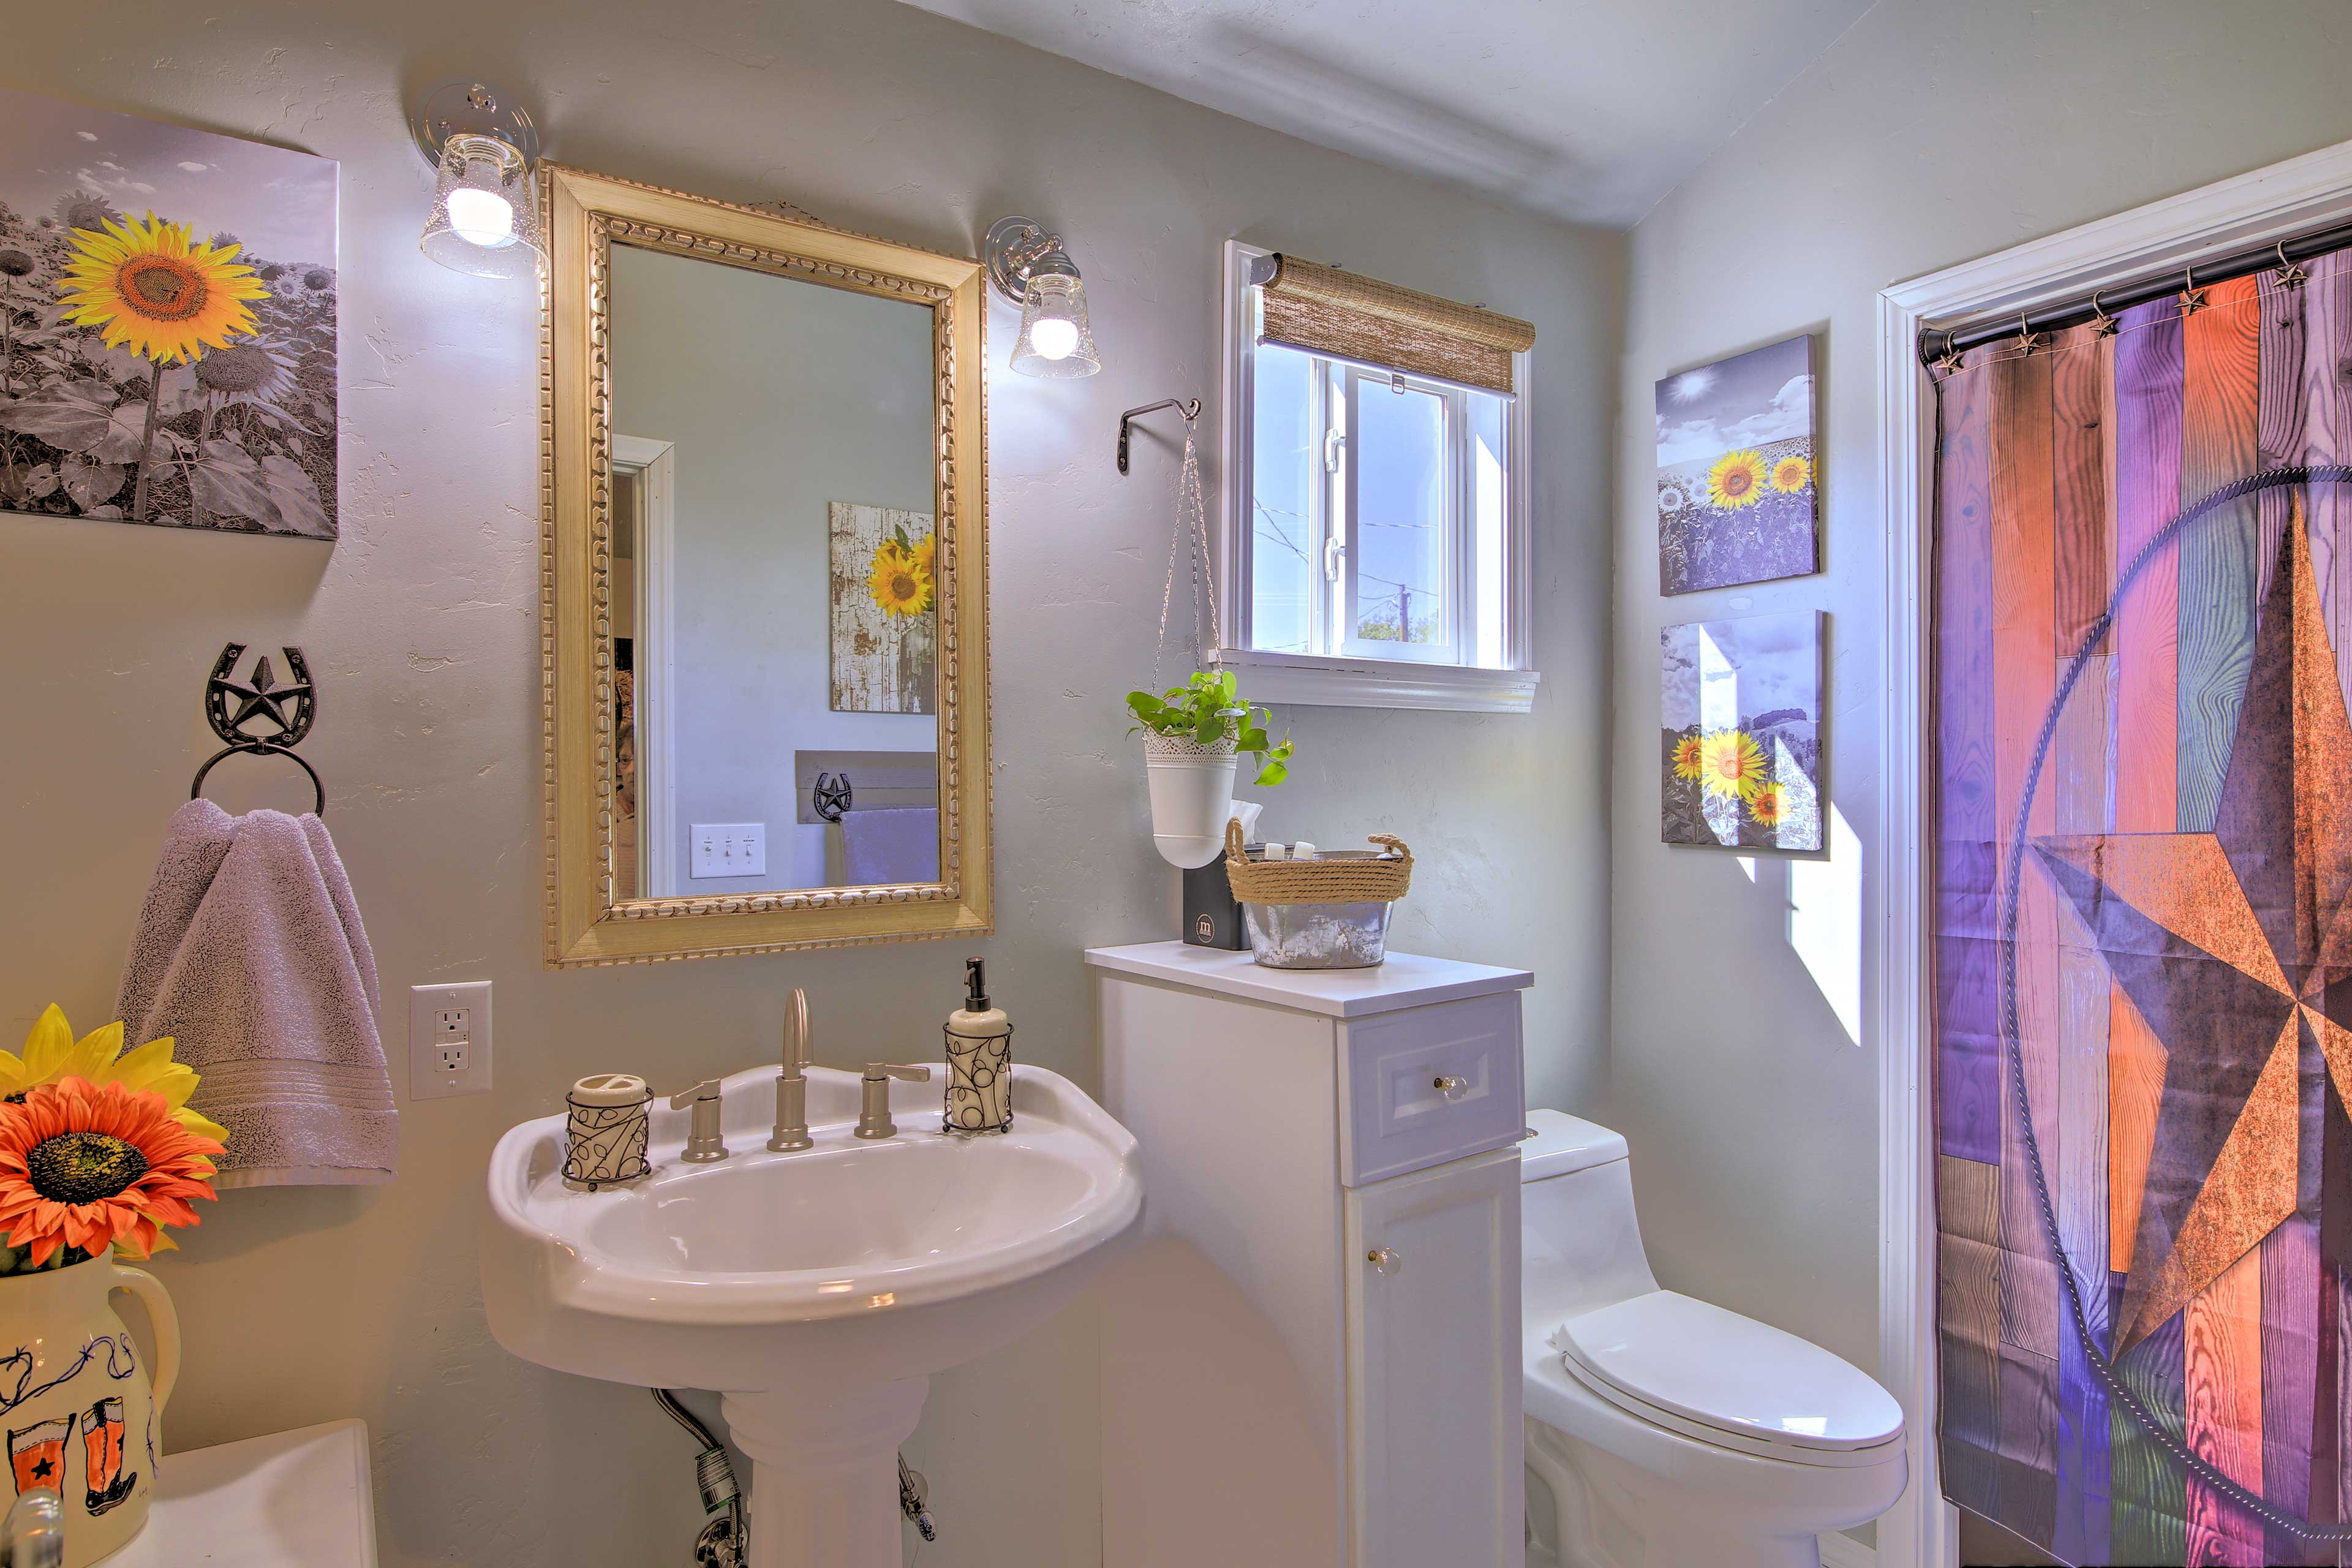 Freshen up in the second bathroom with floral decor!